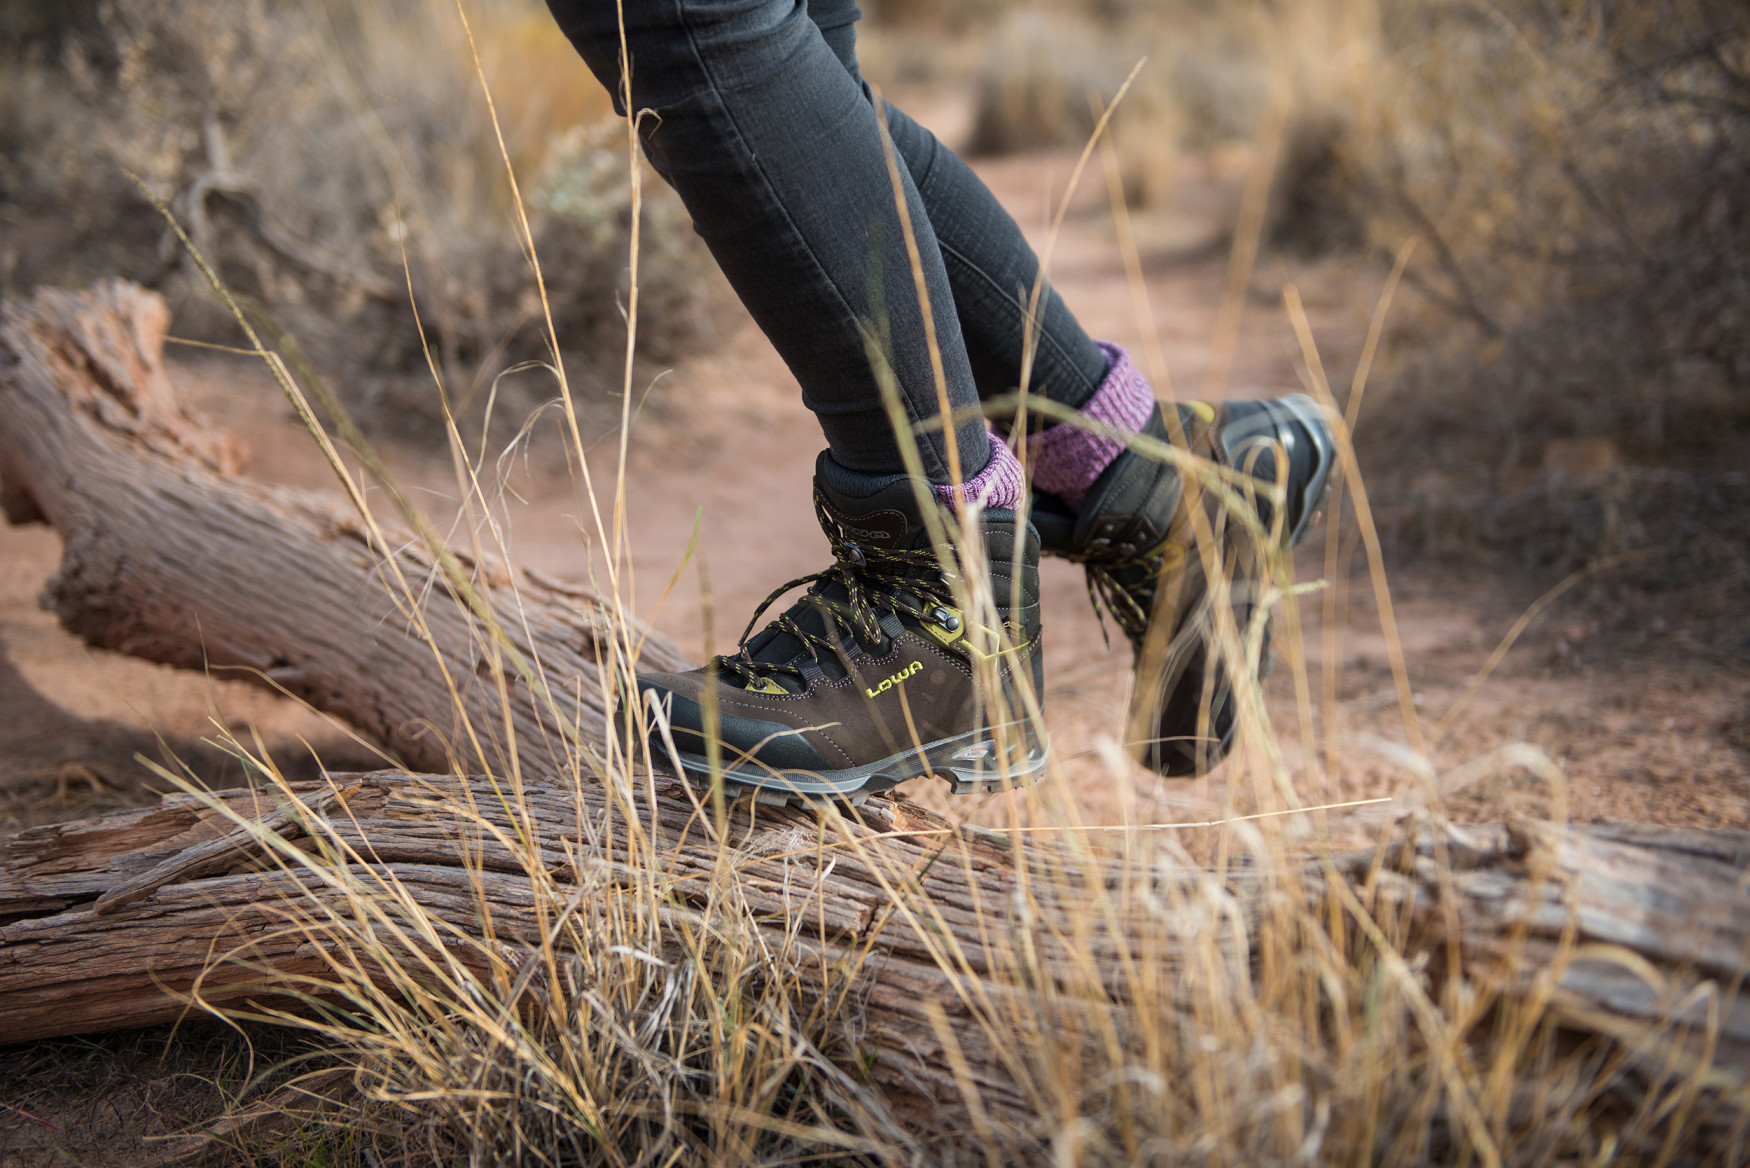 It's certainly not ladylike. But it definitely can meet the anatomic needs of women's feet: LOWA's LADY III GTX. This nubuck-leather boot is anything but a wall flower as its robust and adventure-loving qualities demonstrate. Female adventurers can confidently cross challenging terrain thanks to the VIBRAM® NATURAL sole with the distinct front and heel profile. The integrated GORE-TEX membrane creates a seal of protection from feet-soaking moisture. It's a boot designed to take on the challenges faced during long hikes and trekking tours in low and high mountains.